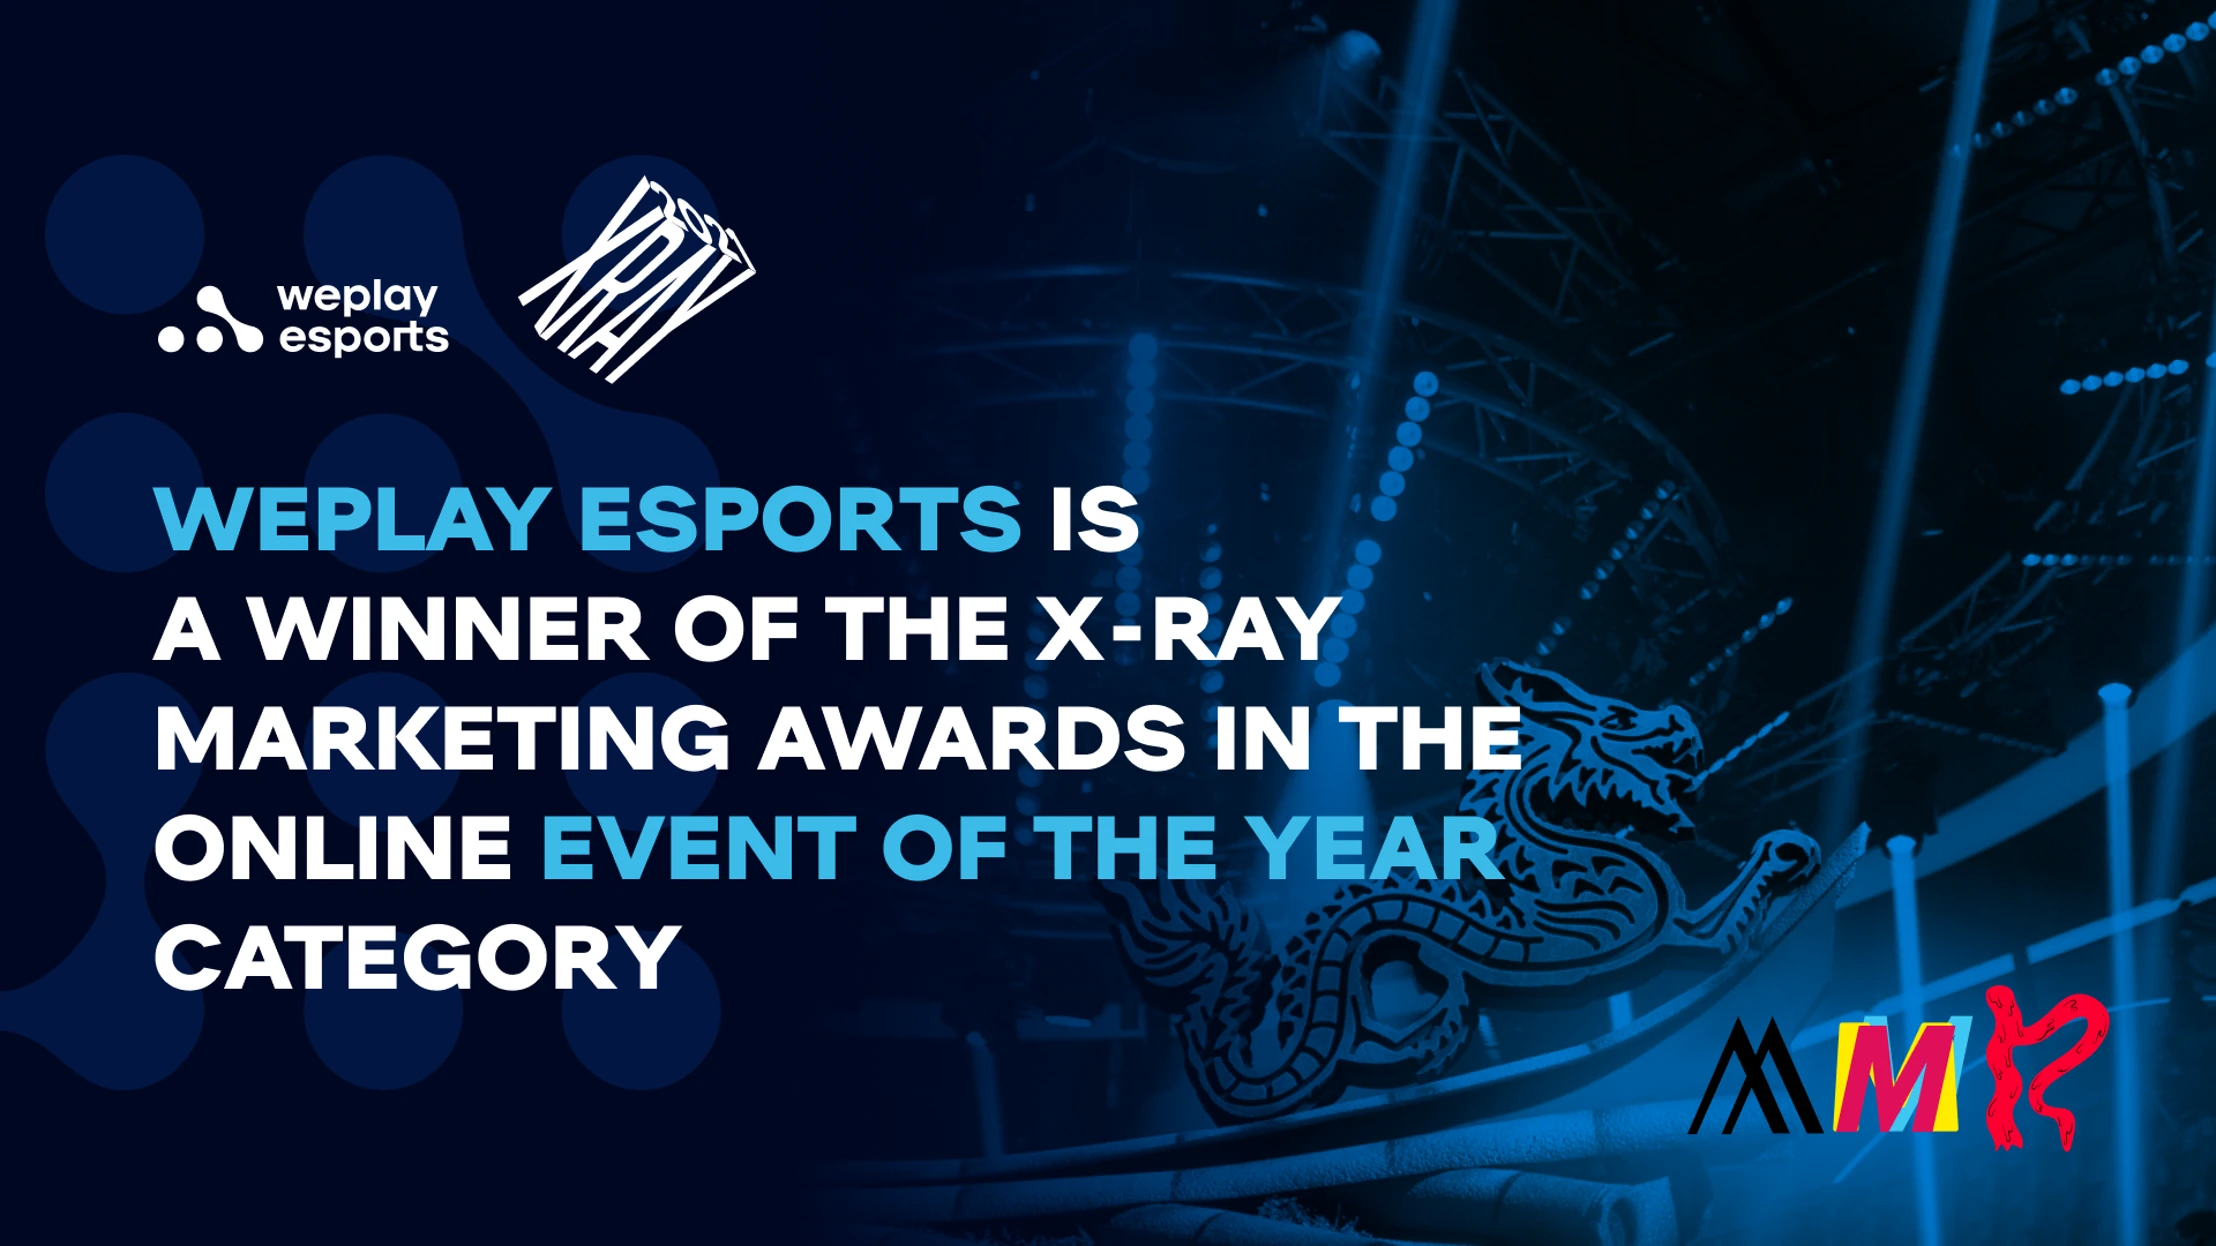 WePlay Esports is a winner of the X-Ray Marketing Awards